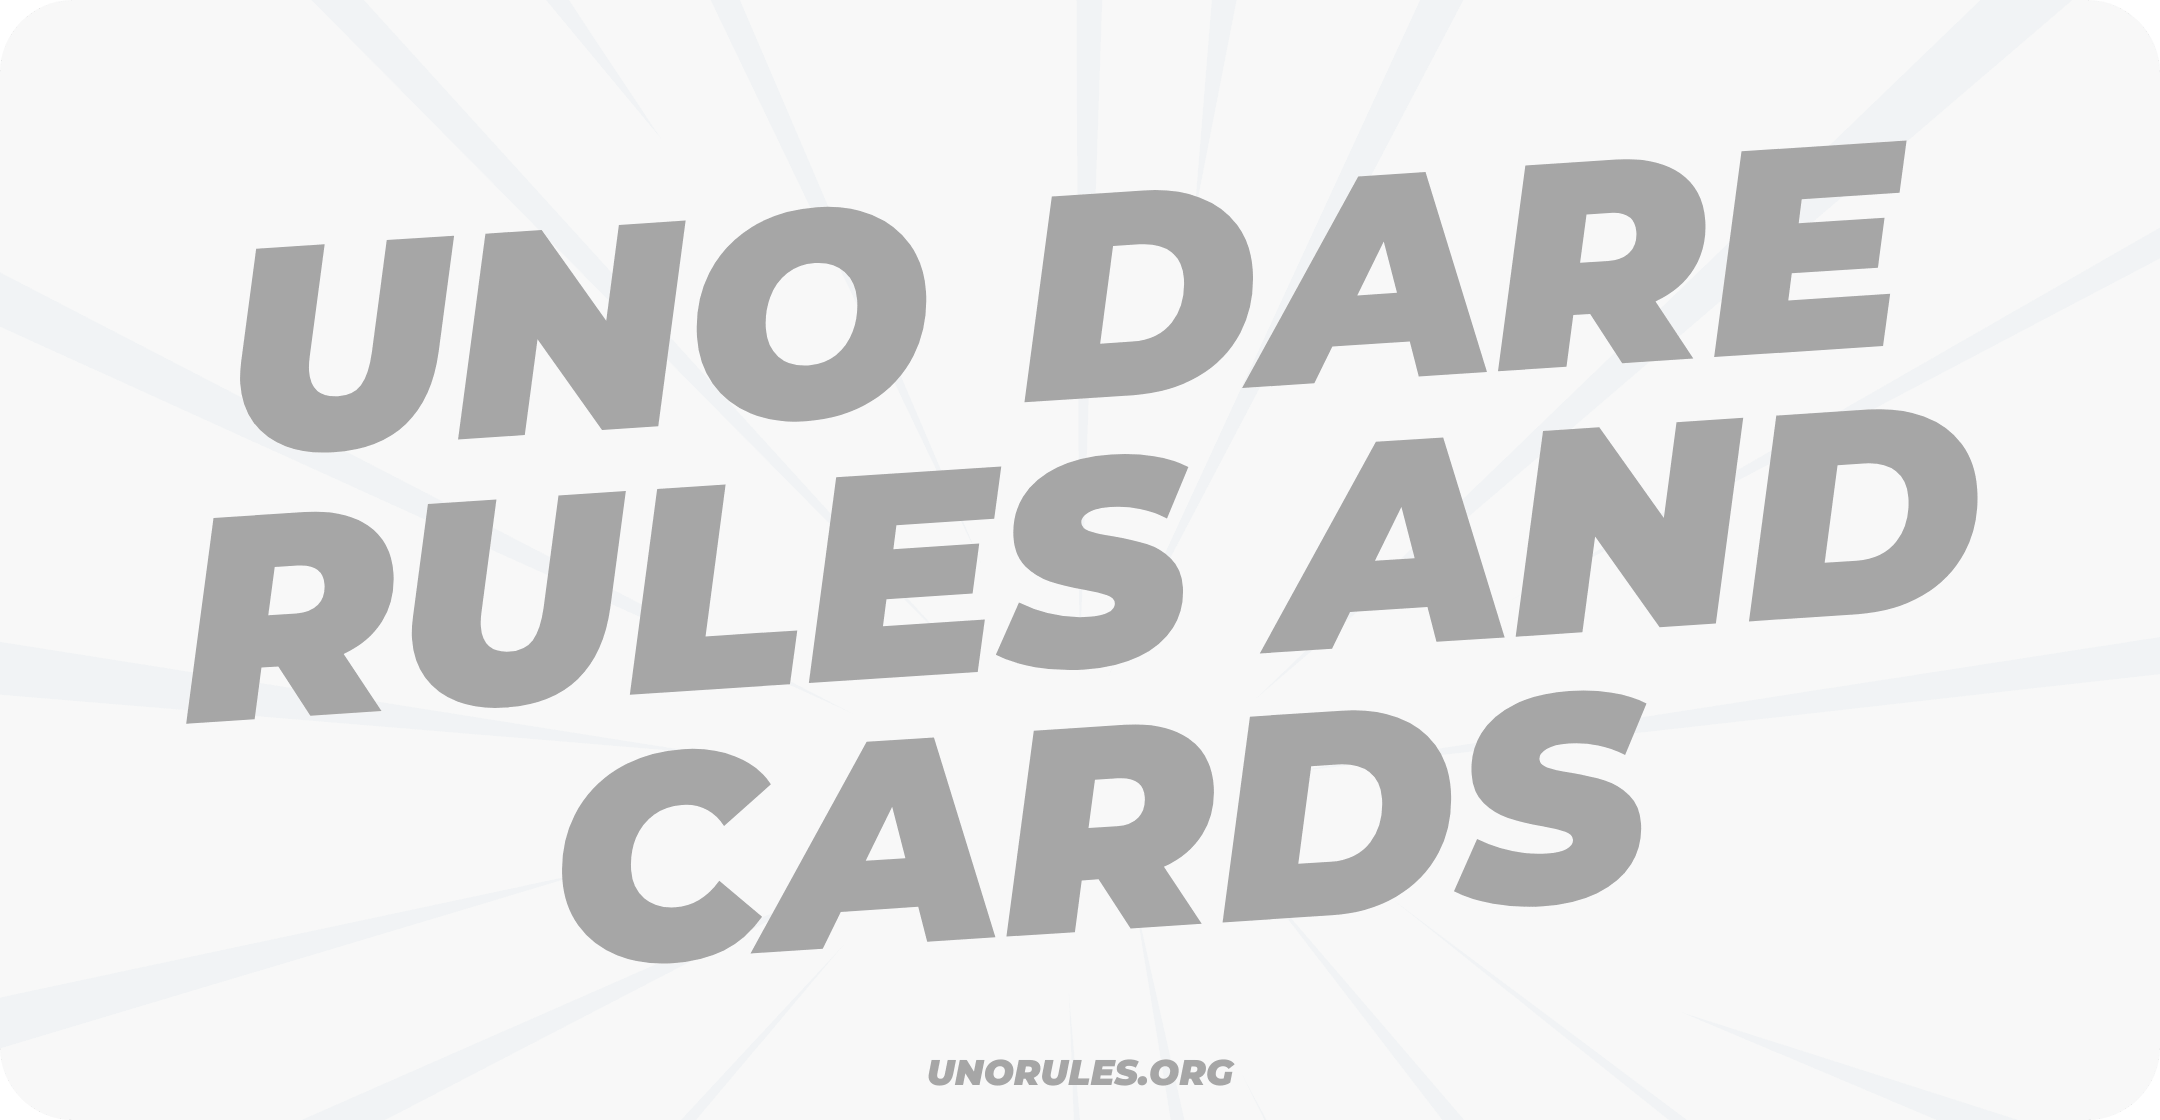 Uno dare rules and cards